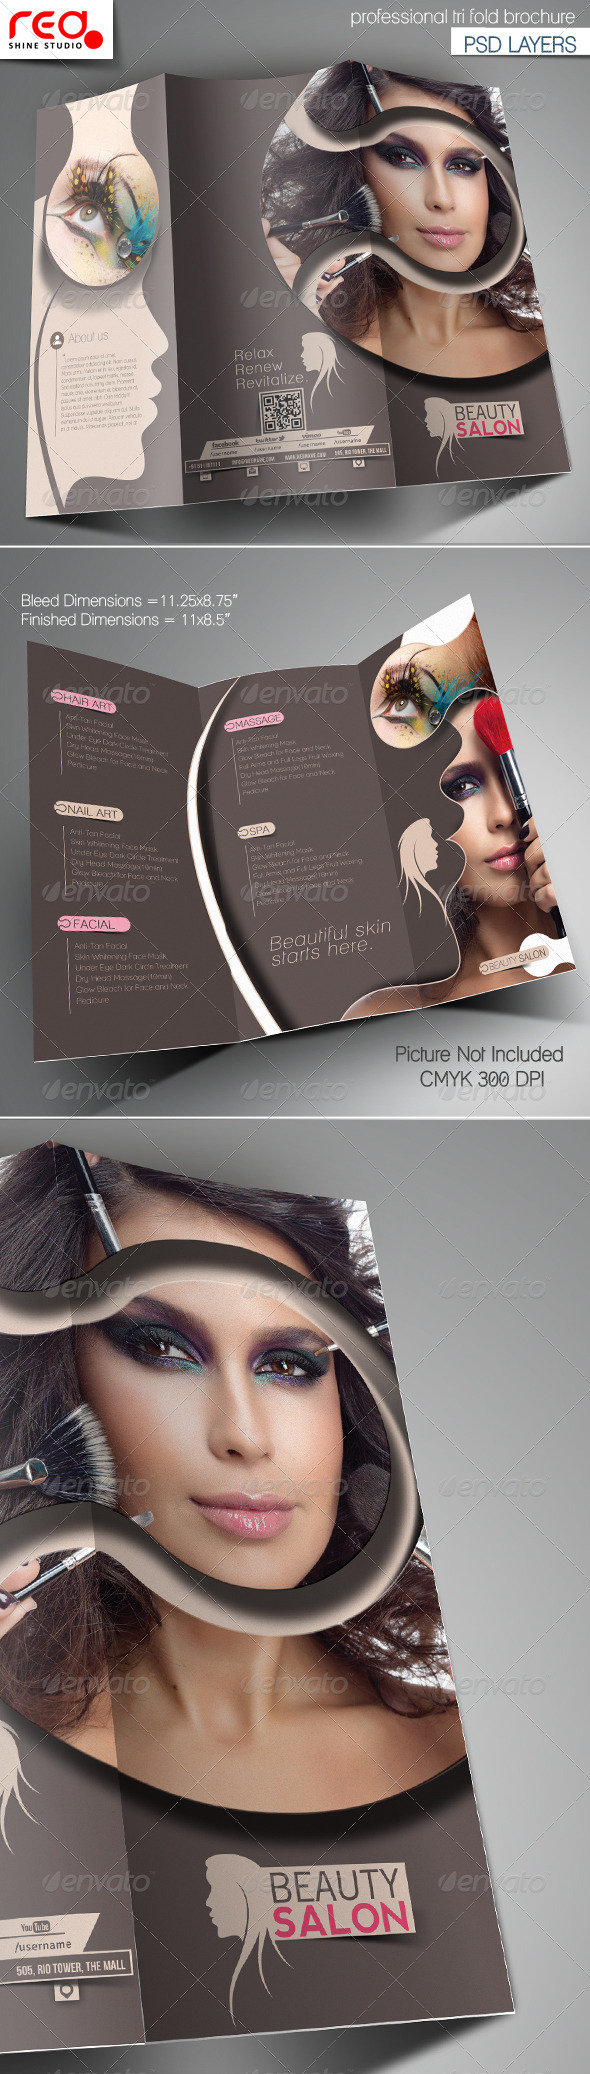 Beauty Salon Promotion Trifold Brochure Template  - Corporate Brochures